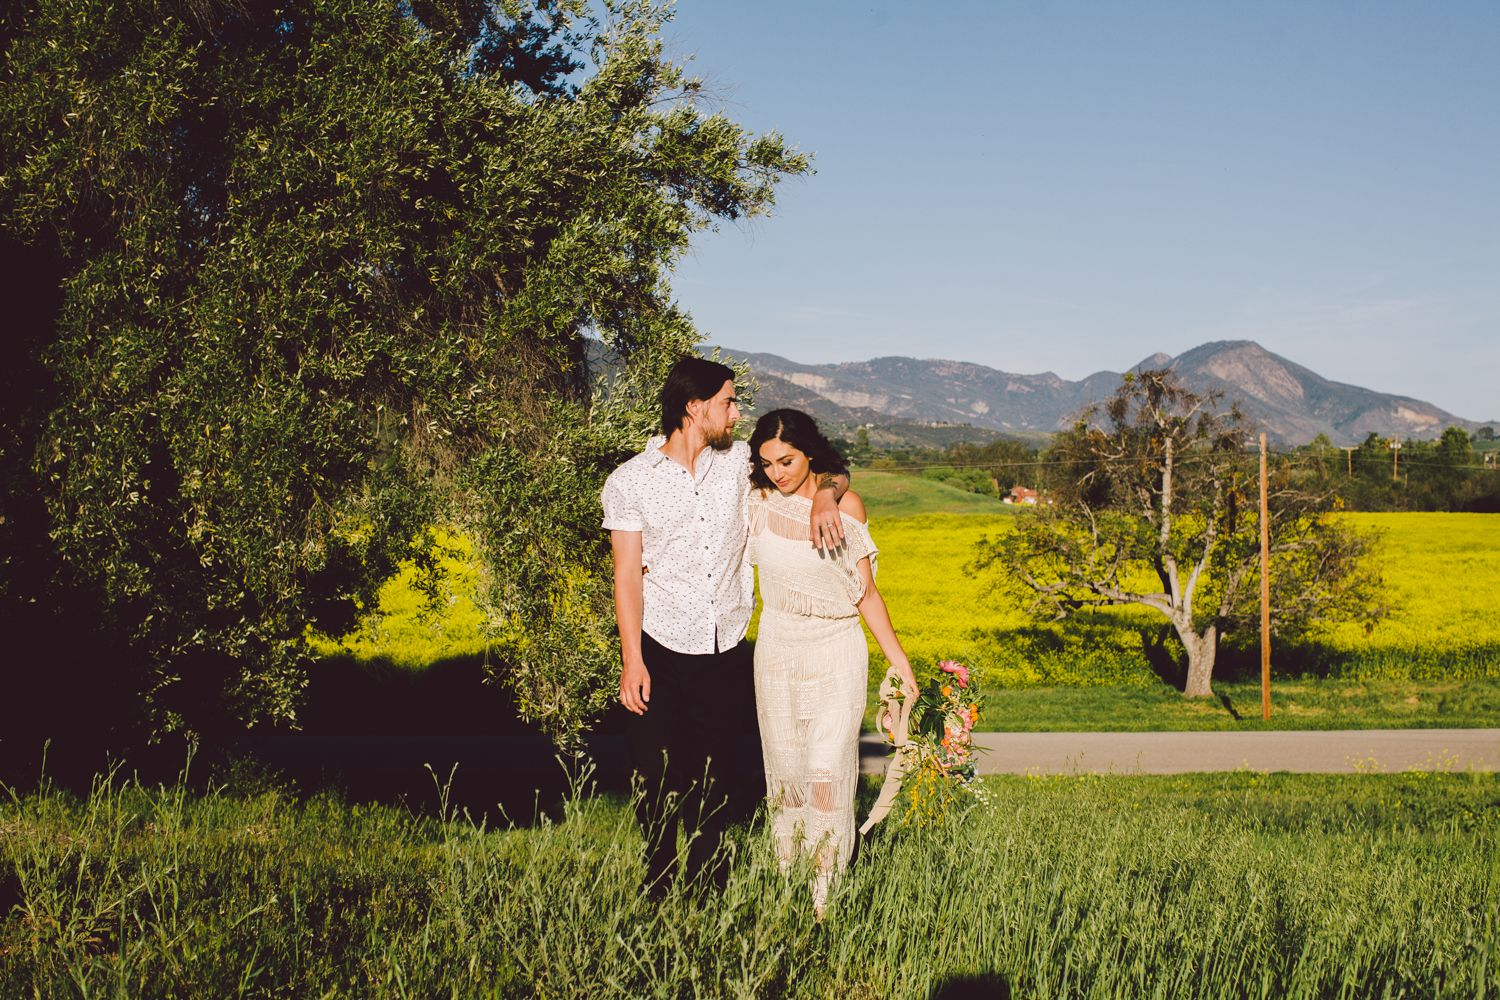 Pin on elopements & intimate microweddings